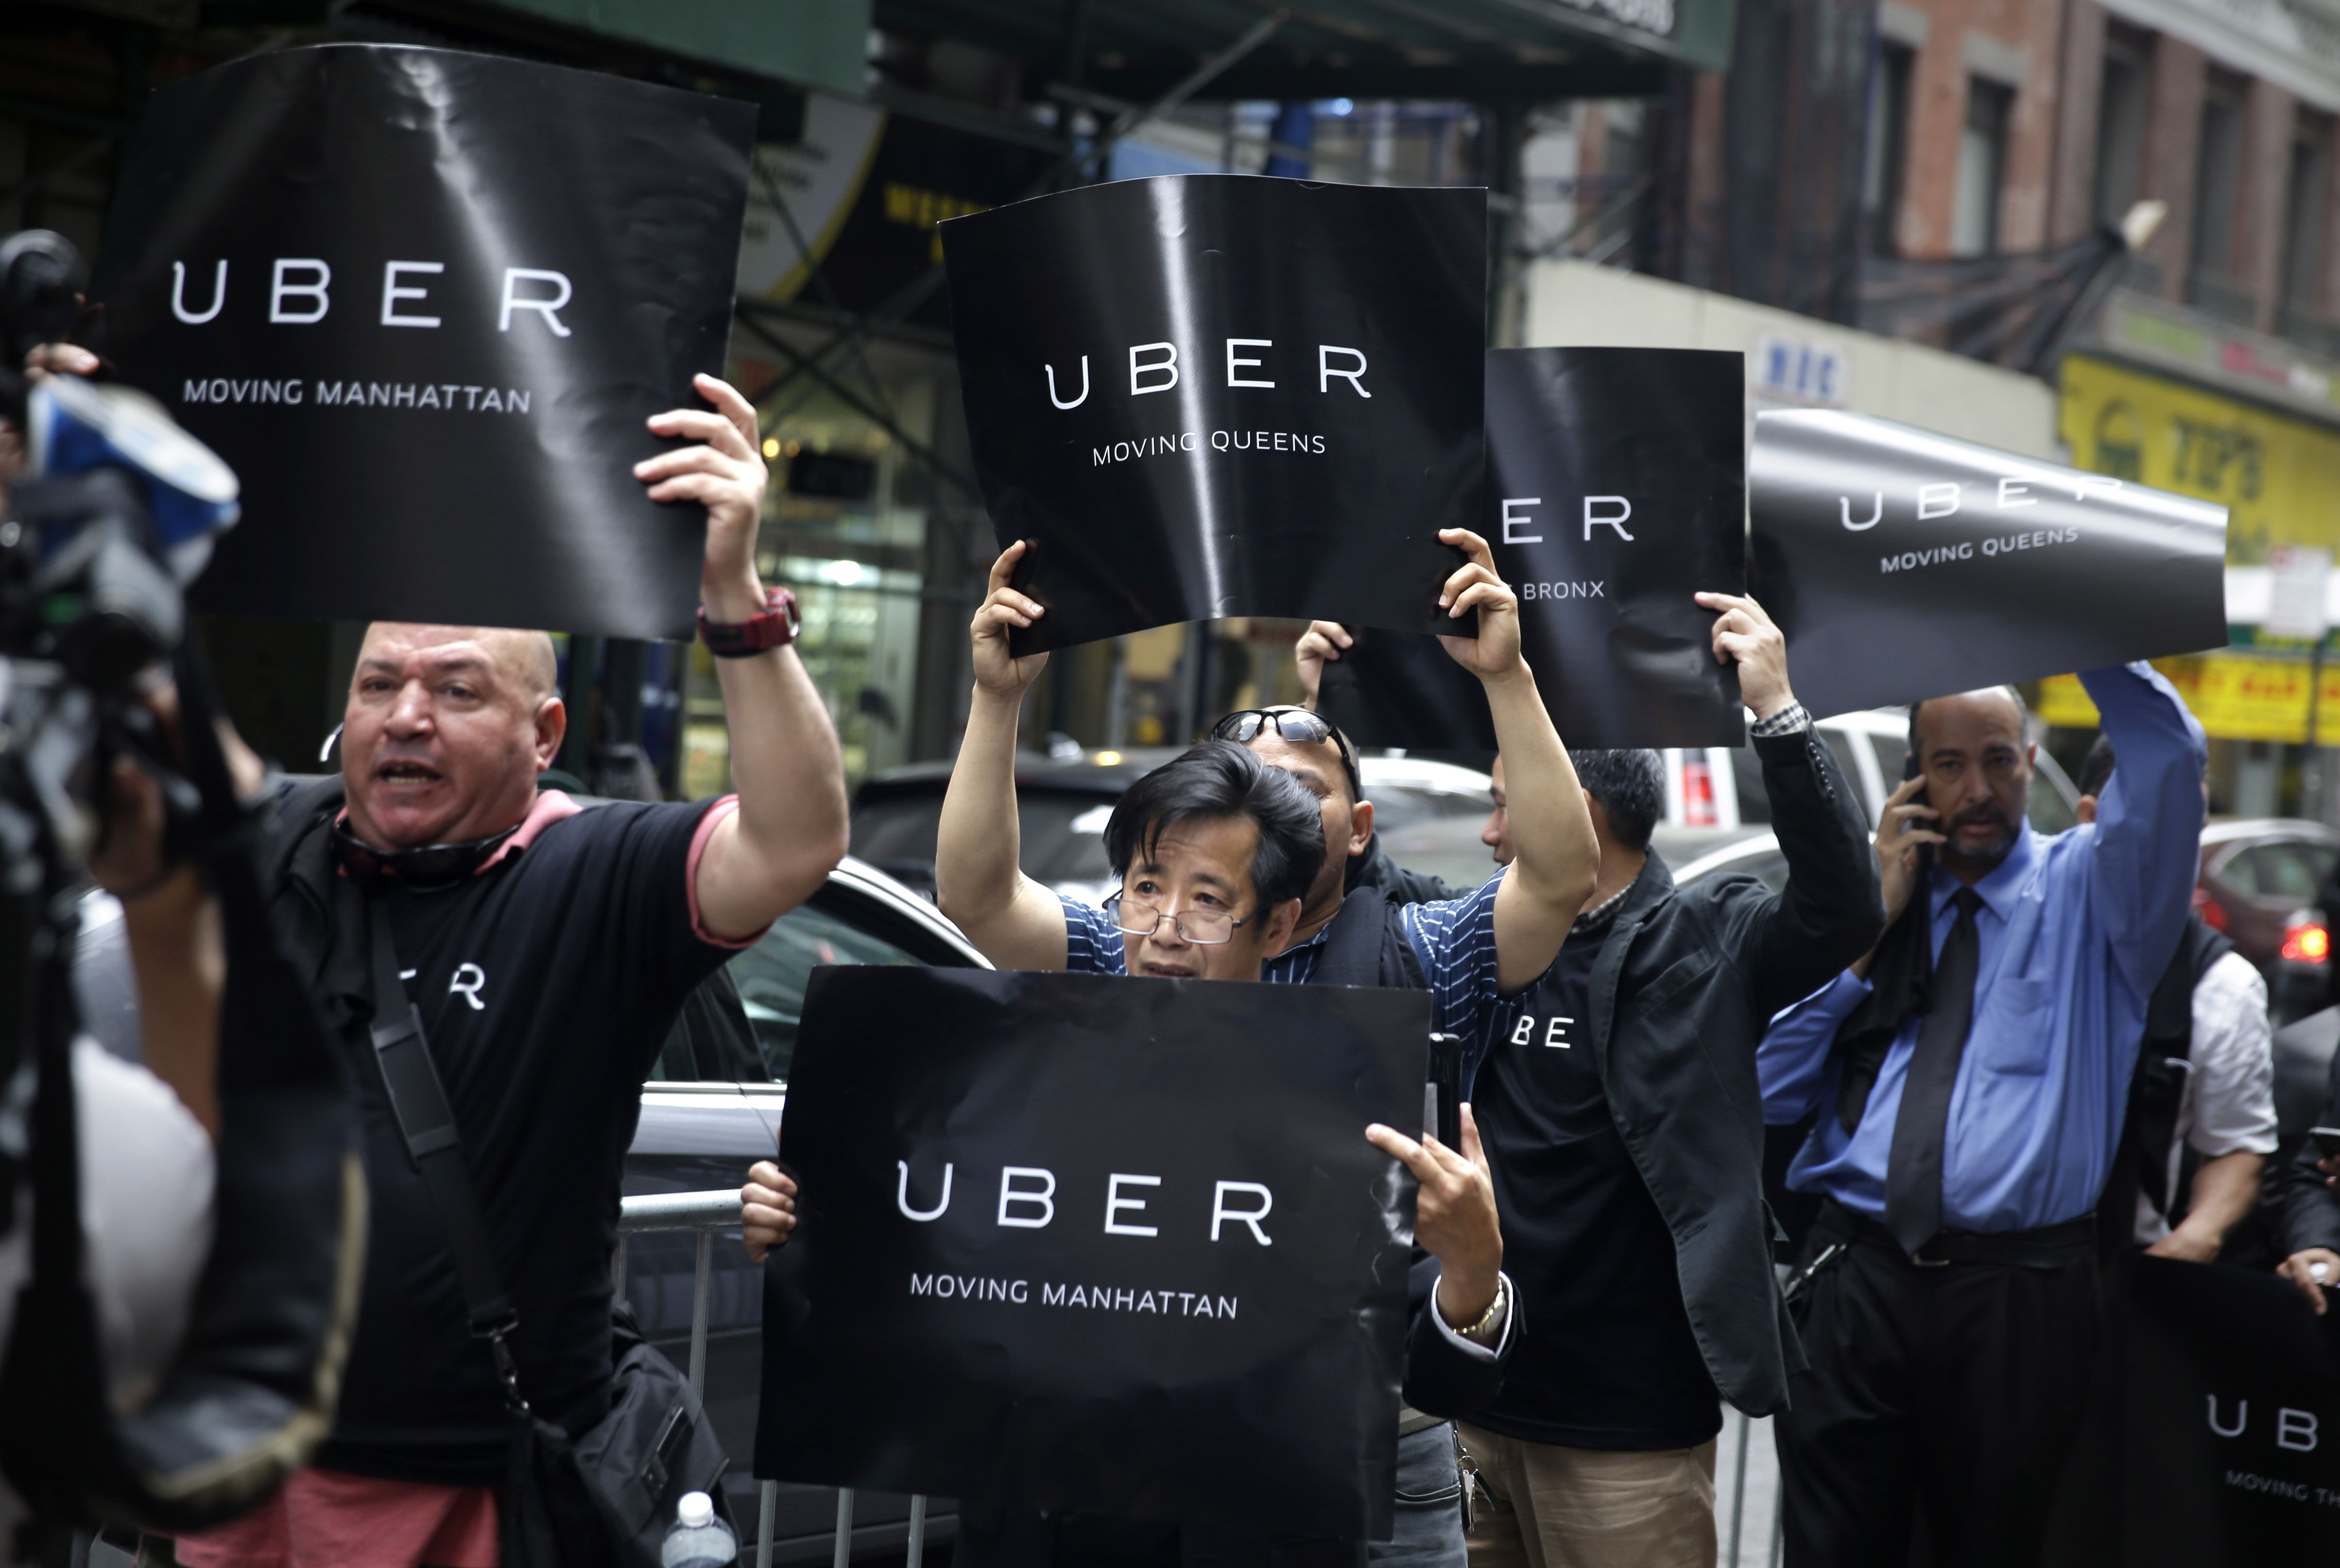 Uber drivers are freelance, not employees, NYC official says